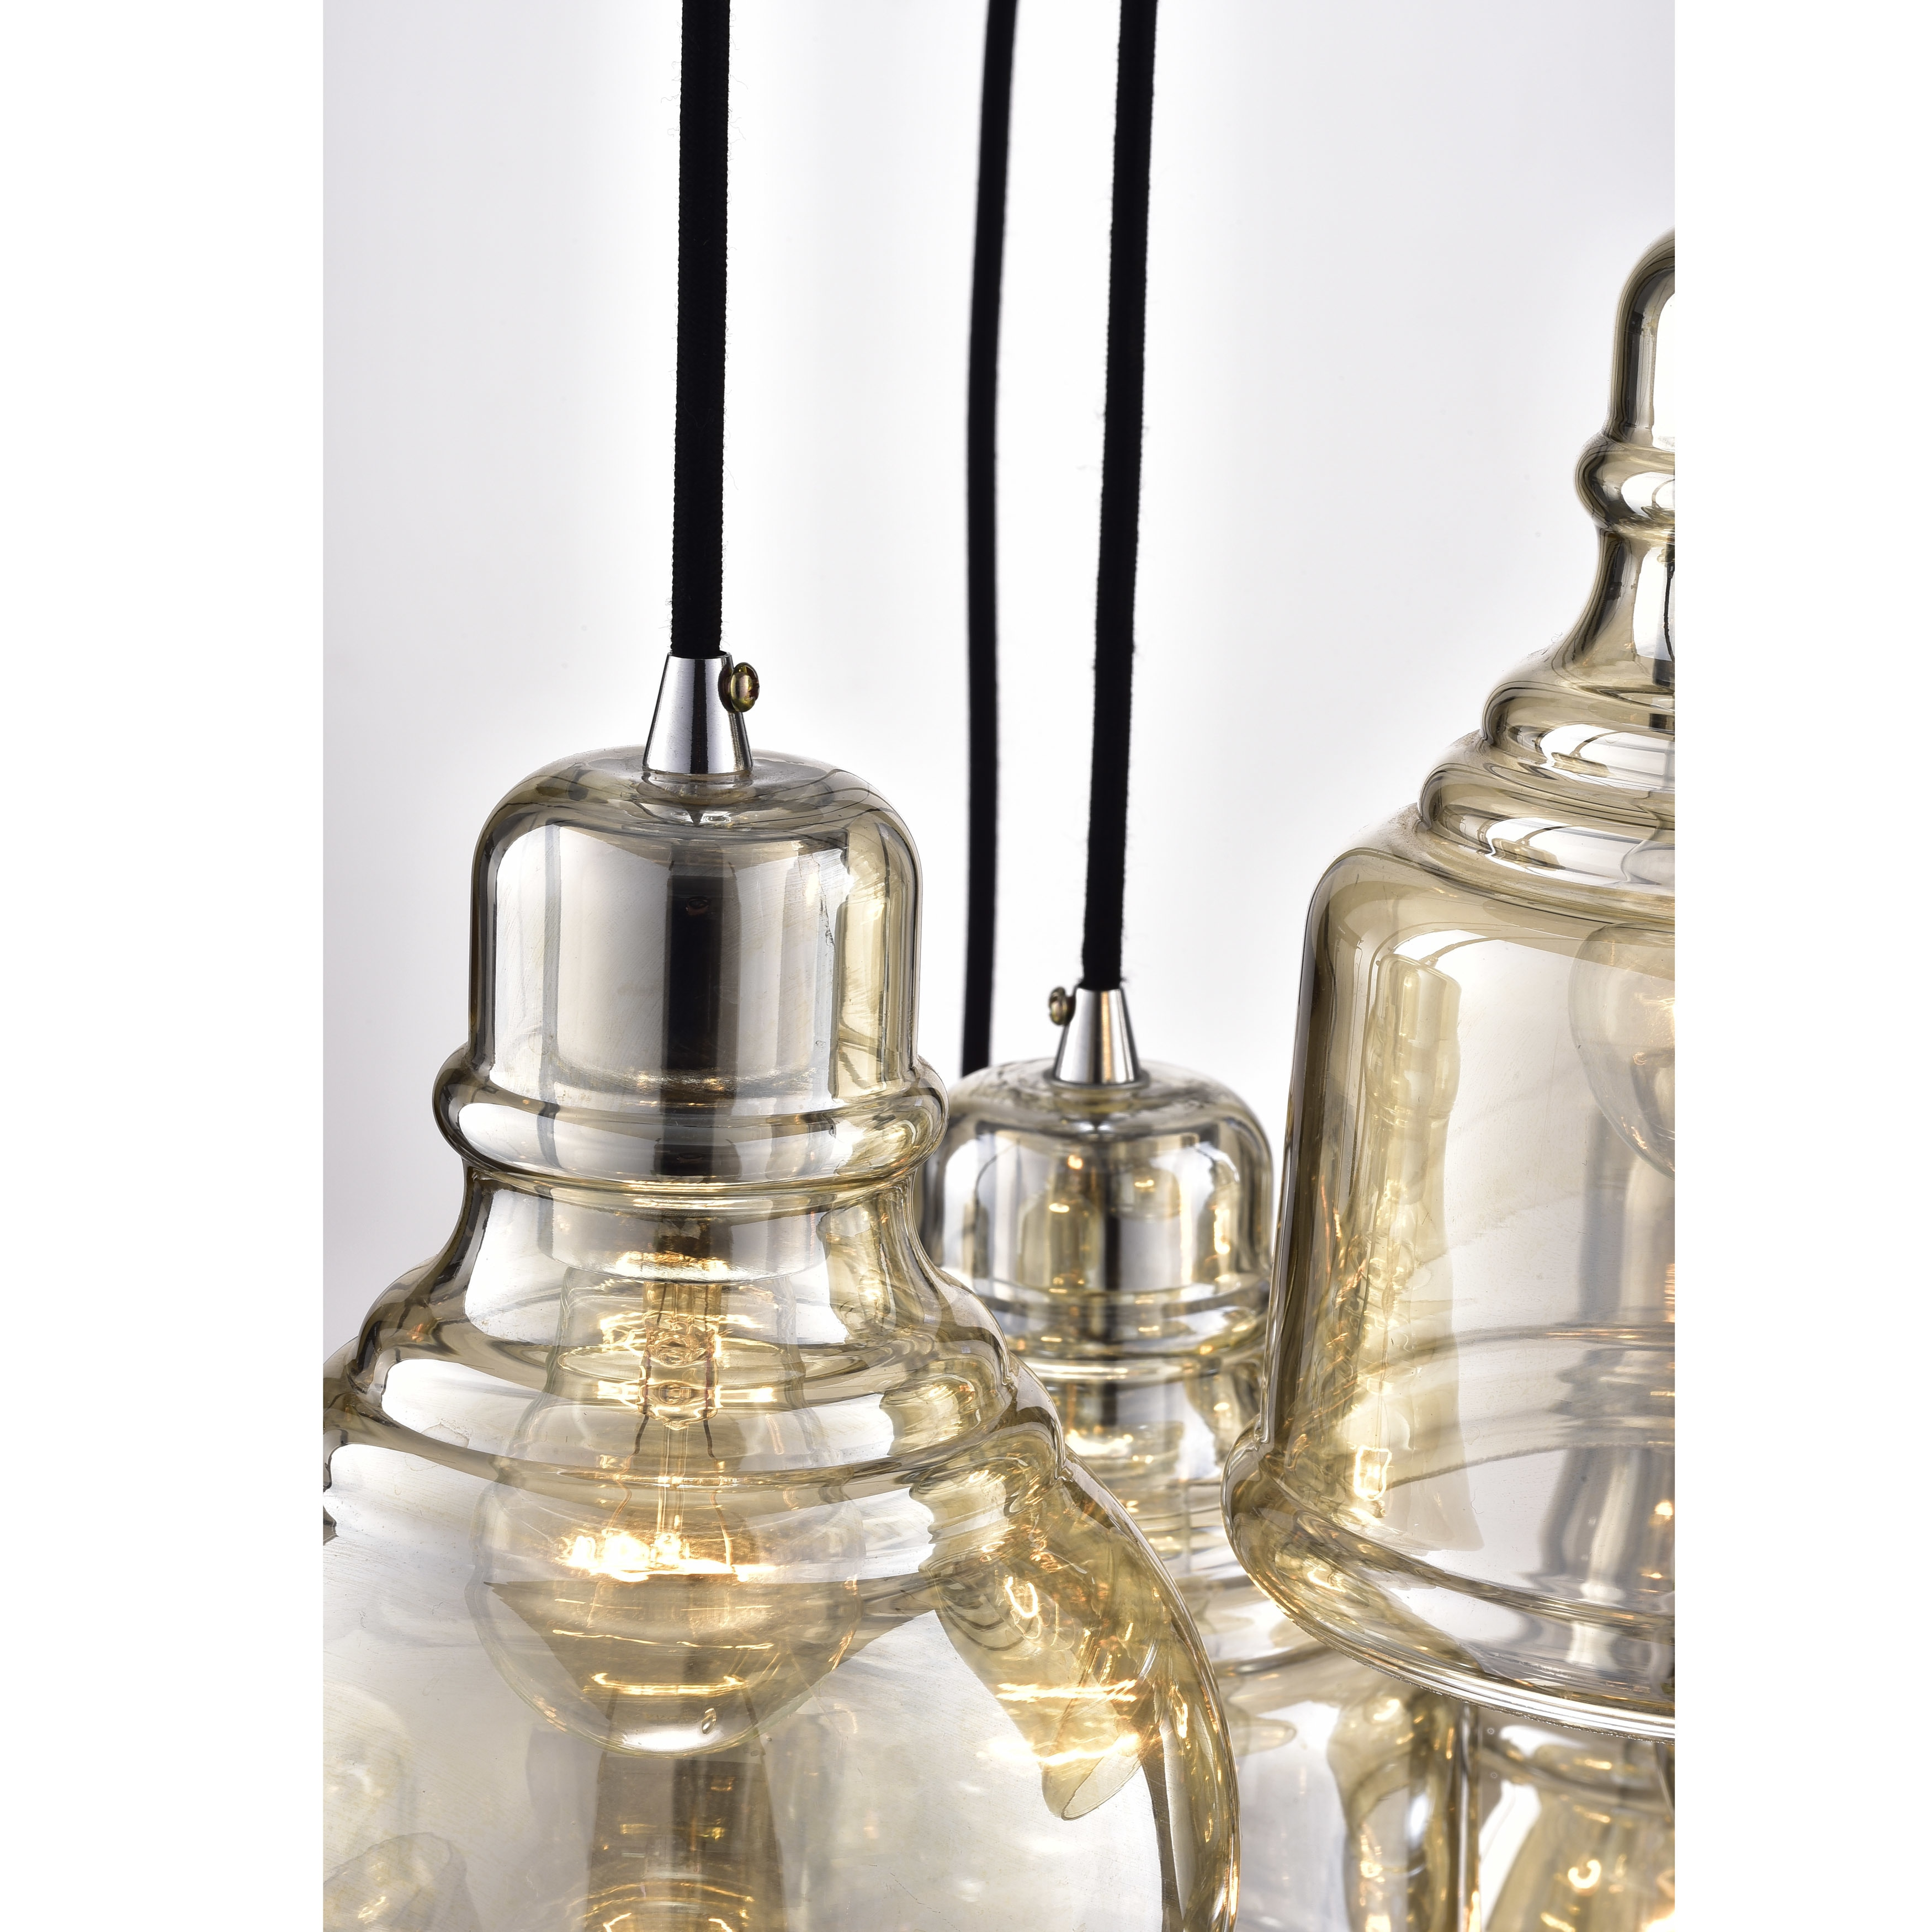 Mariana 8 light cognac glass cluster pendant chandelier with chrome mariana 8 light cognac glass cluster pendant chandelier with chrome finish and round base free shipping today overstock 22942433 arubaitofo Images